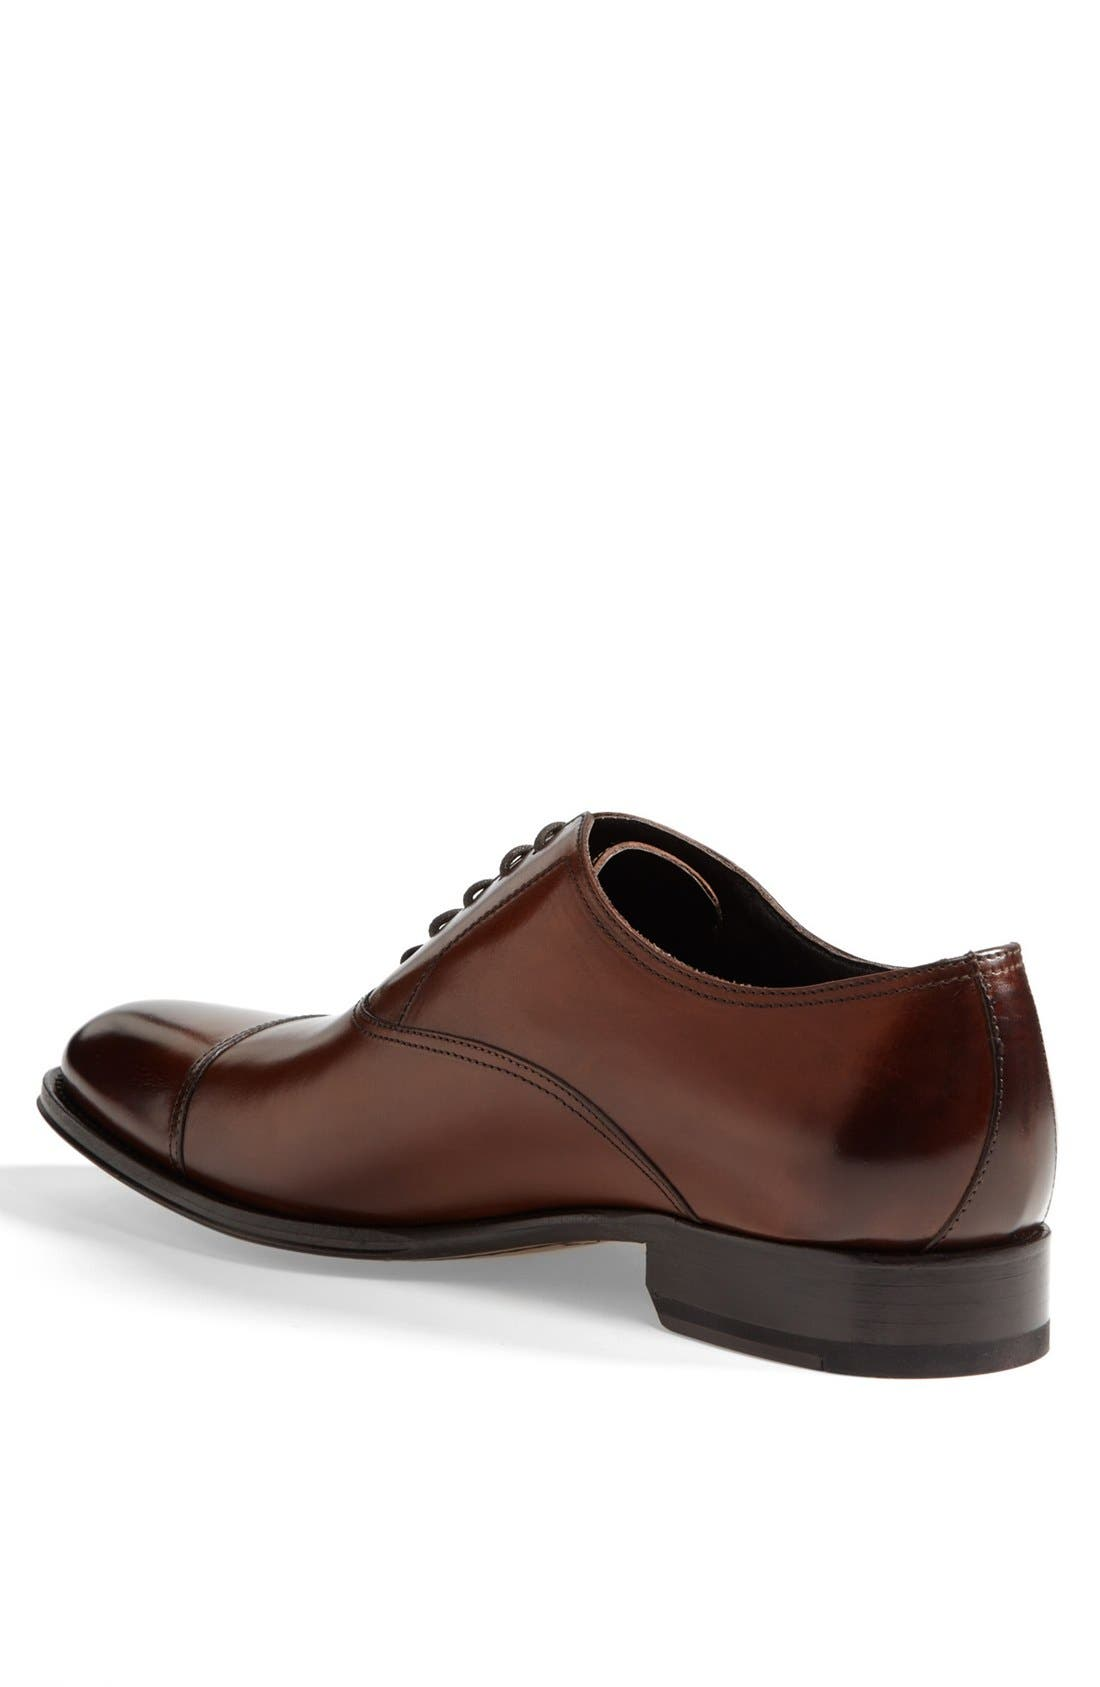 Alternate Image 2  - To Boot New York Brandon Cap Toe Oxford (Nordstrom Exclusive) (Men)